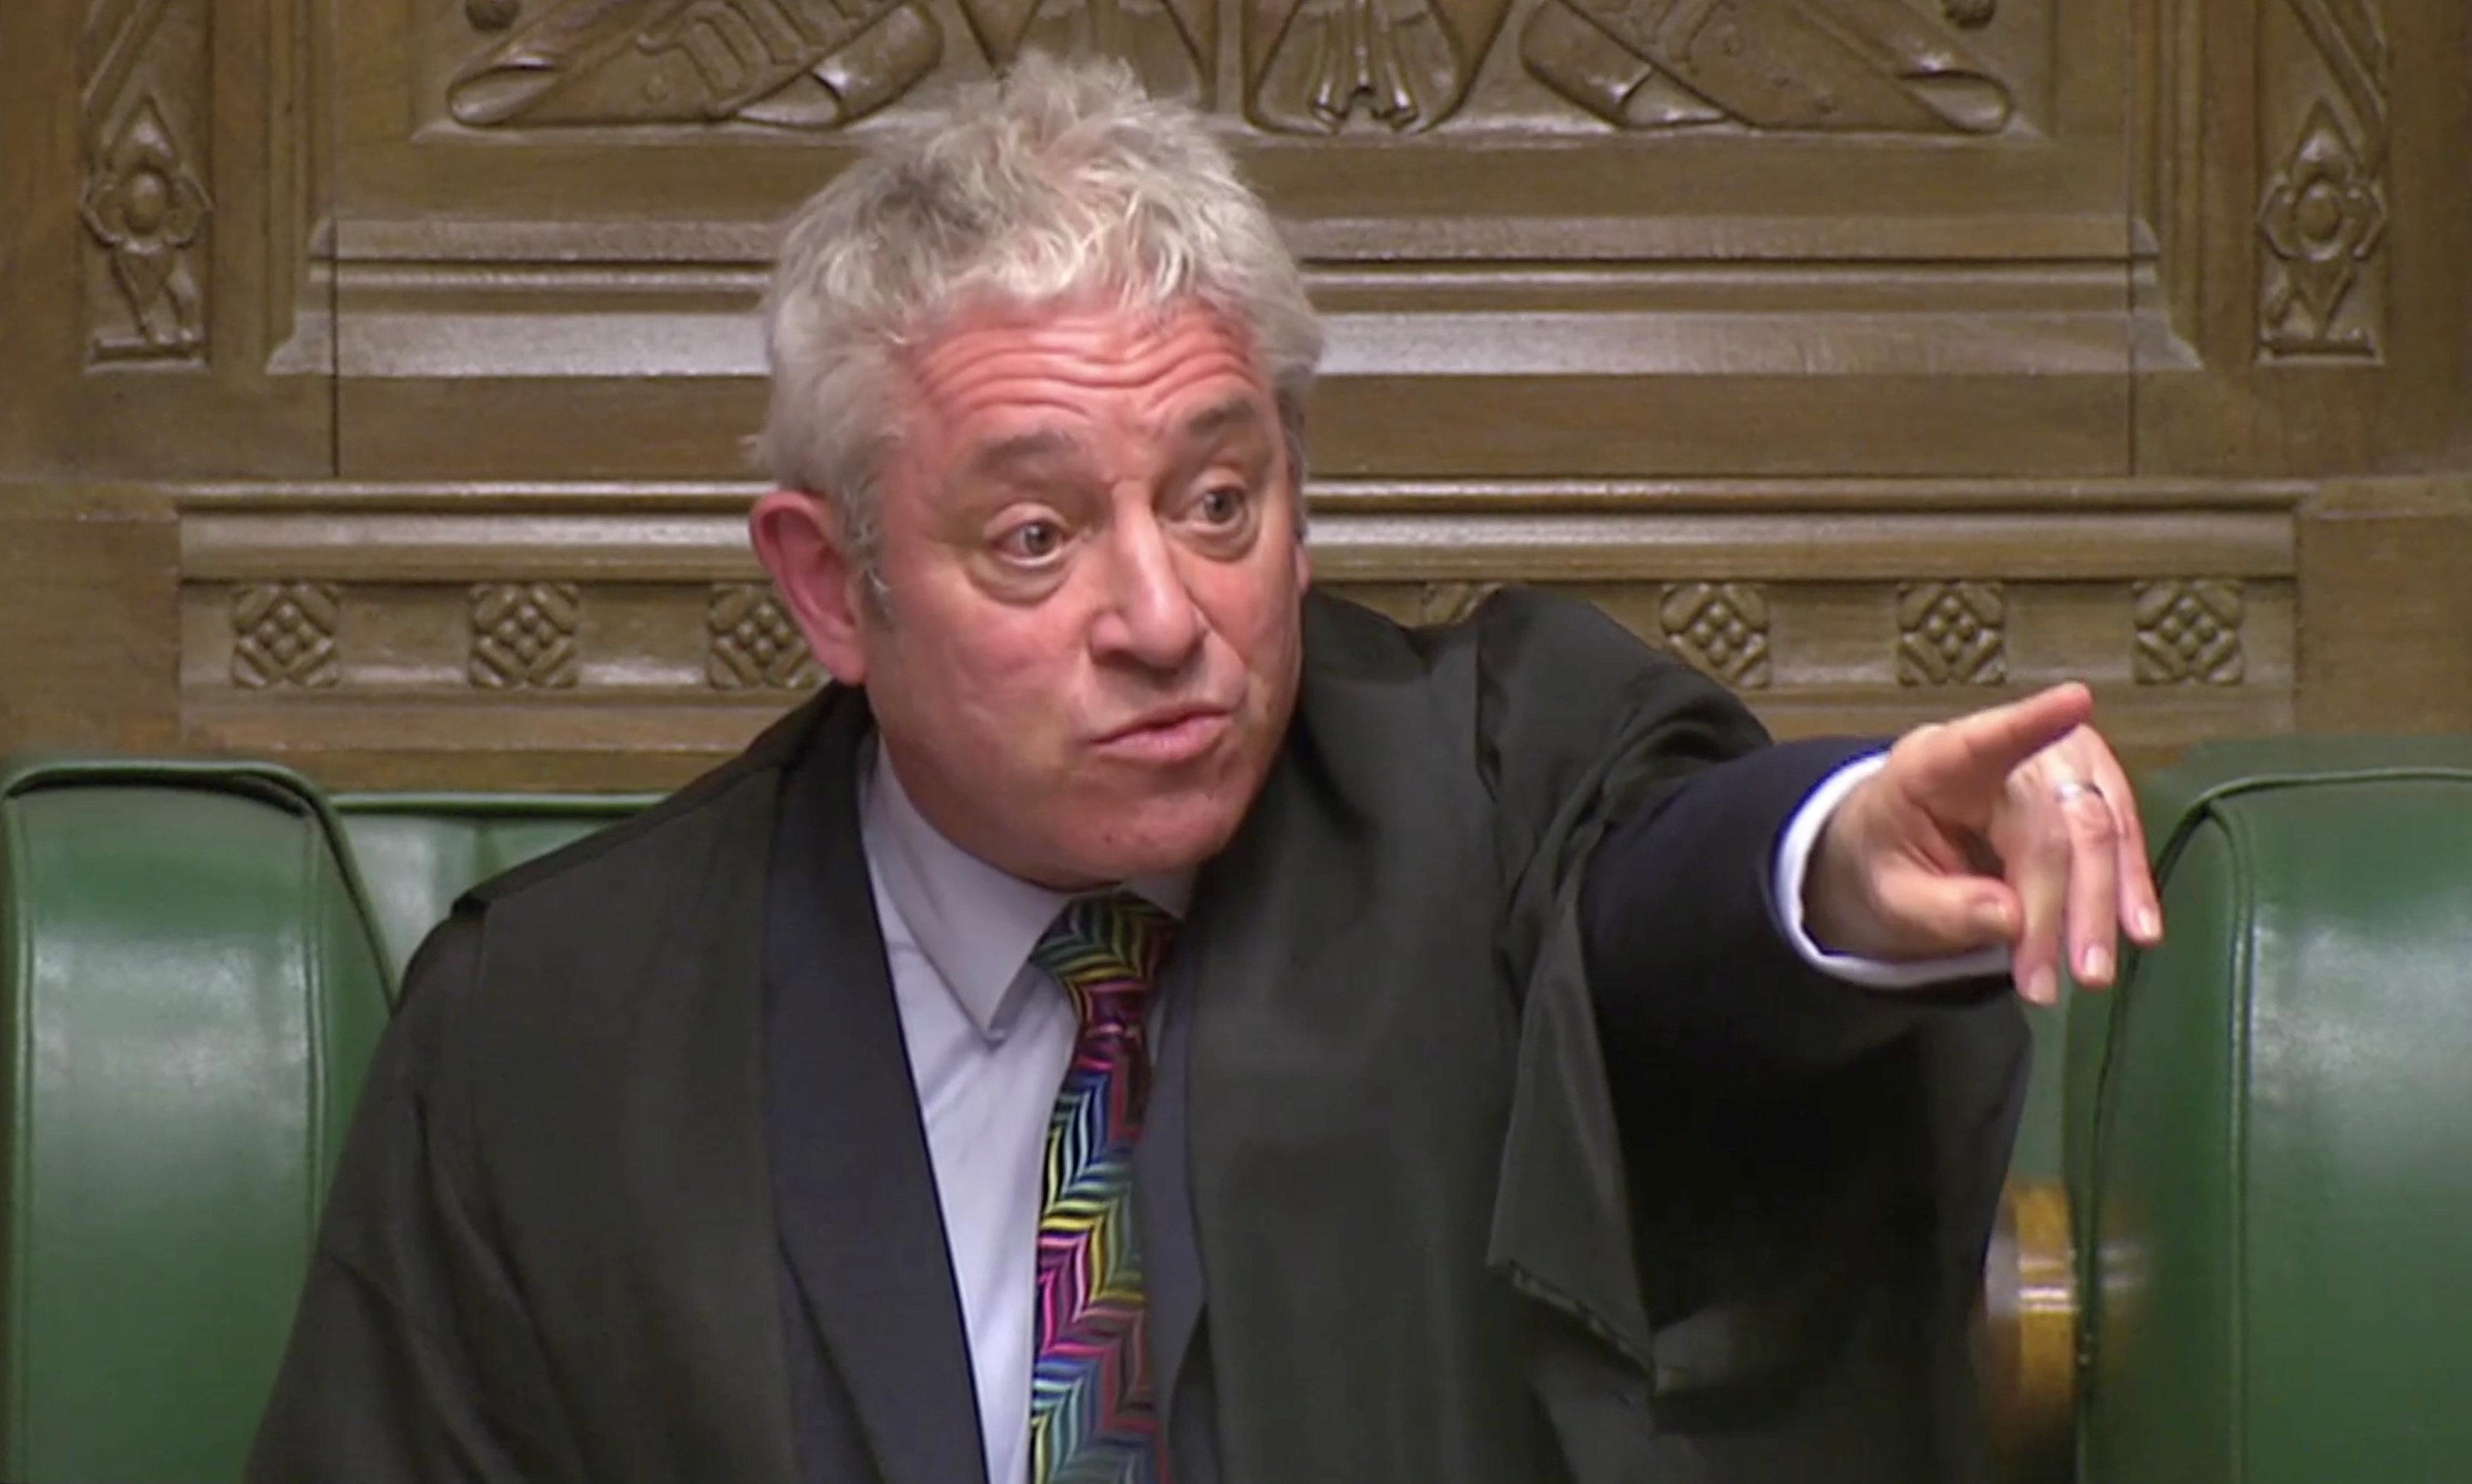 John Bercow's ruling has breathed new life into the people's vote